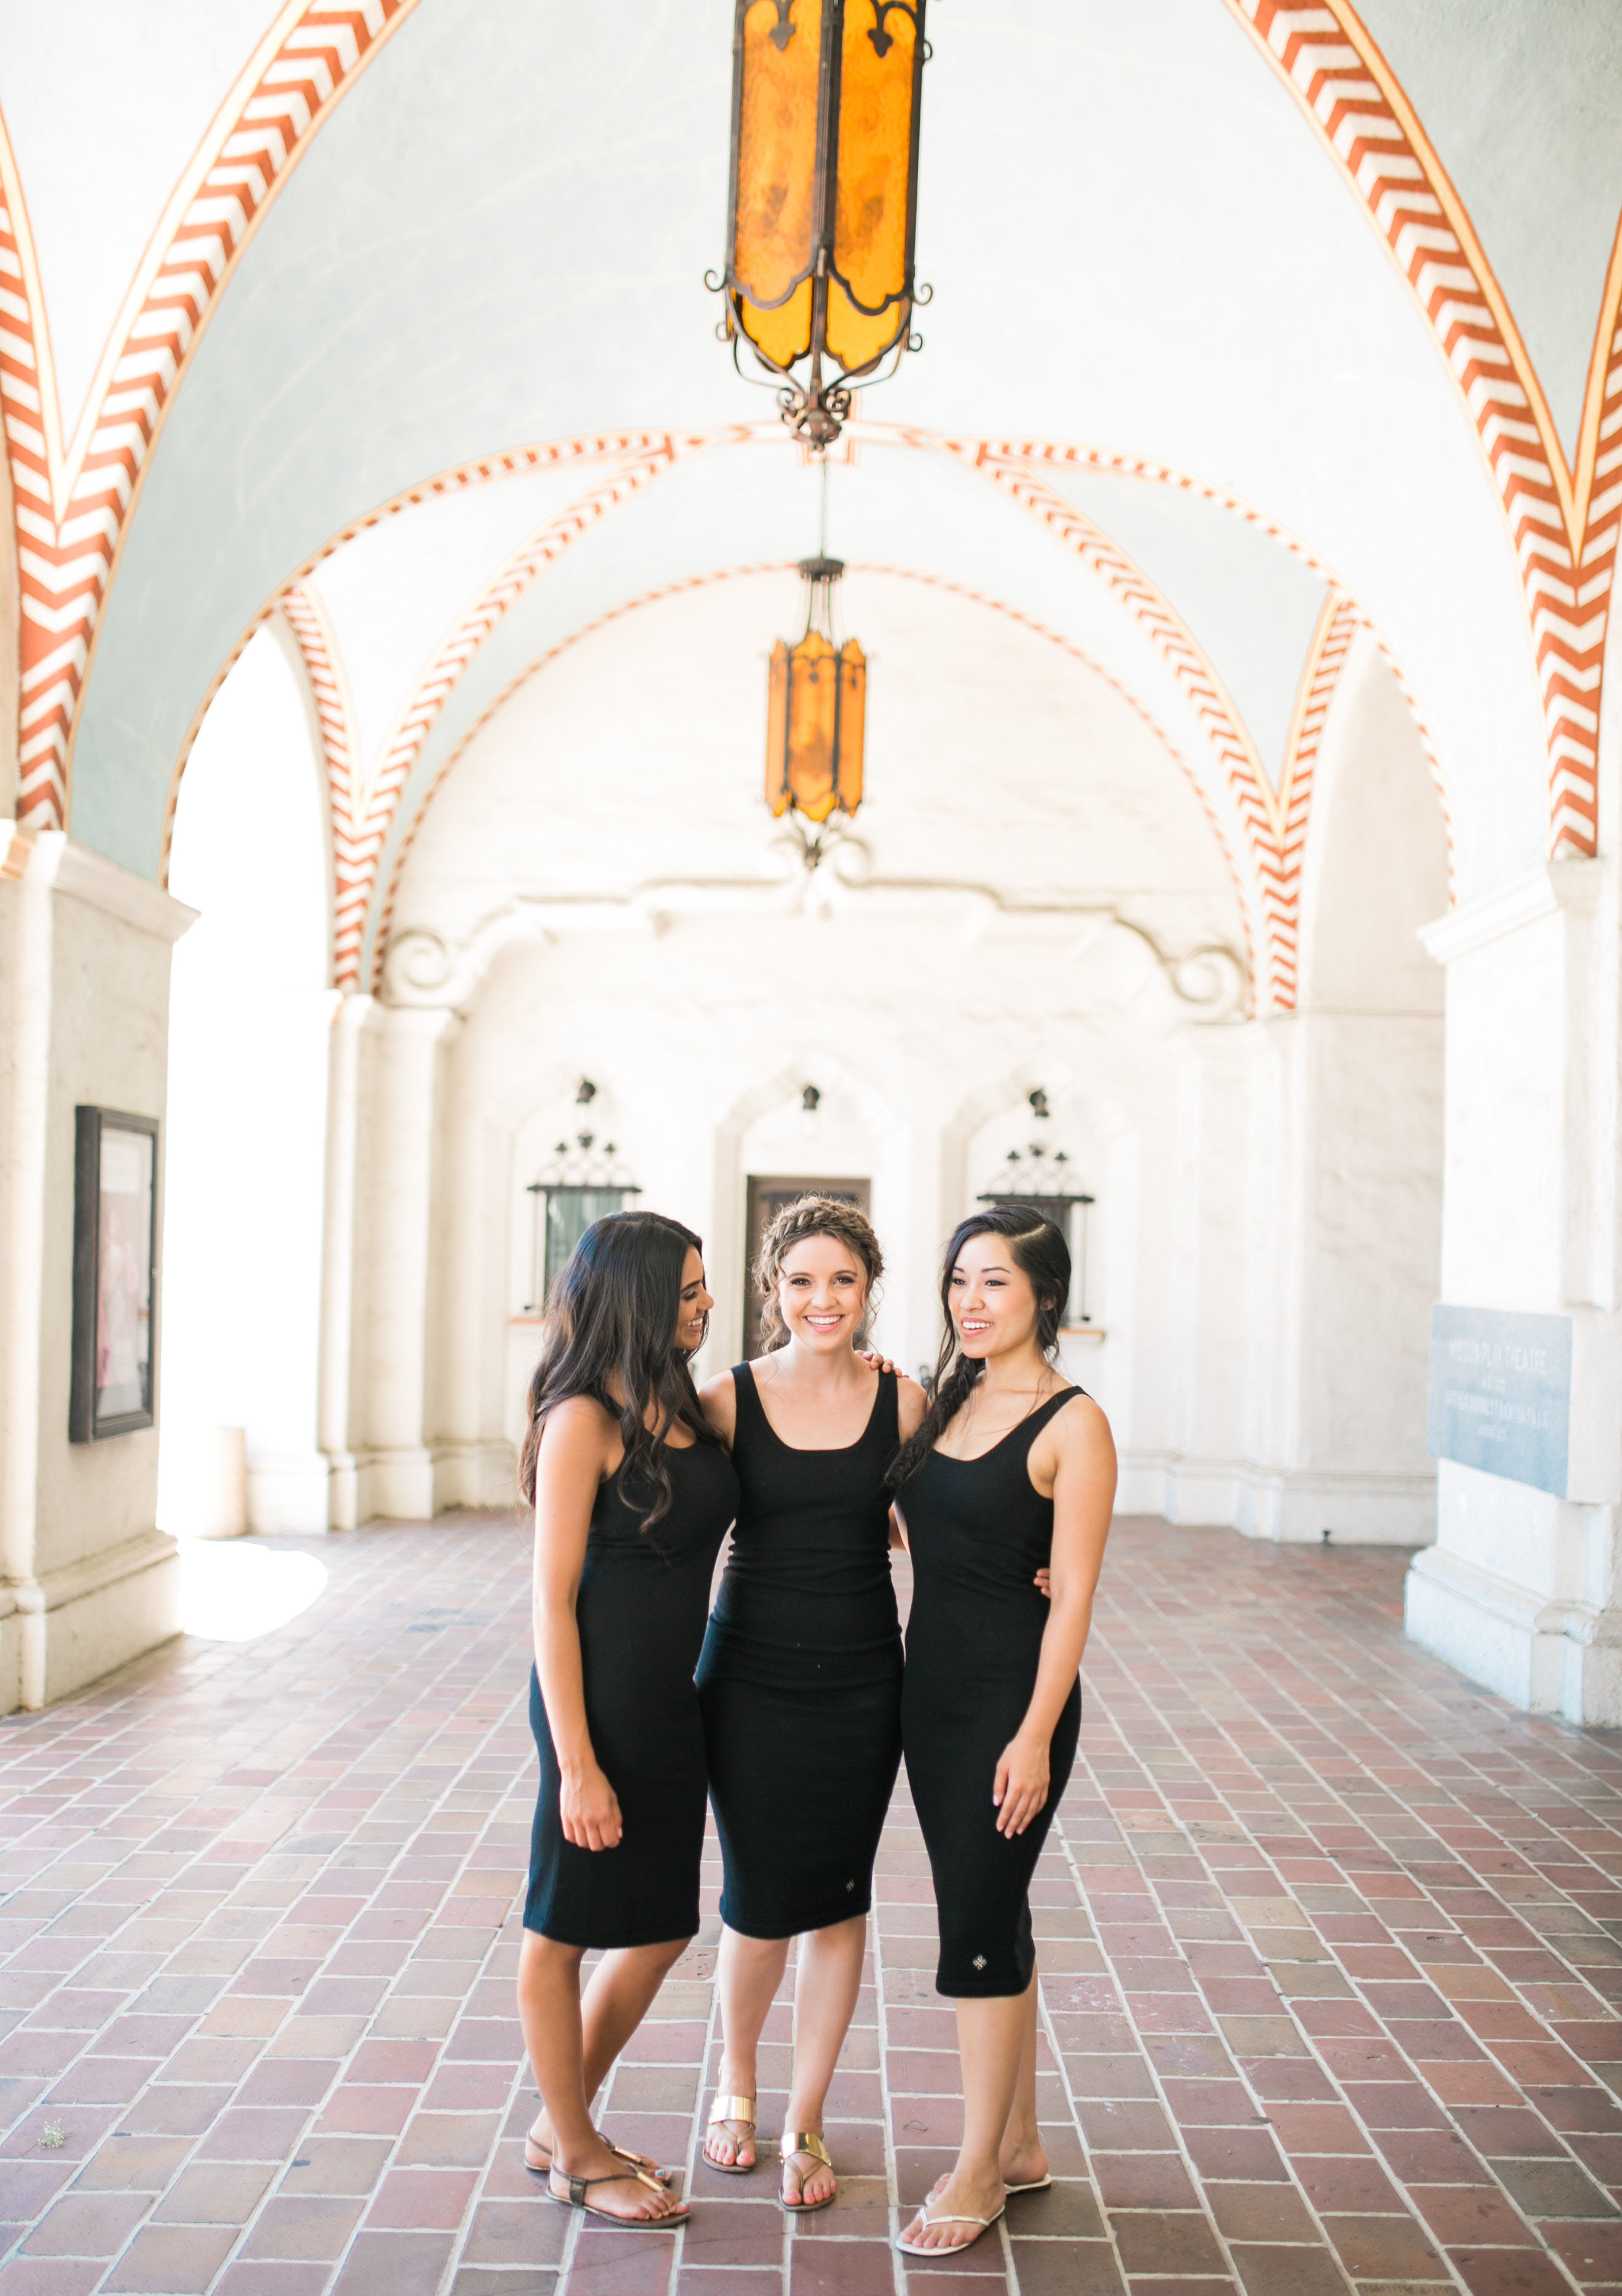 The three models are wearing the black Gianna skinny dress.